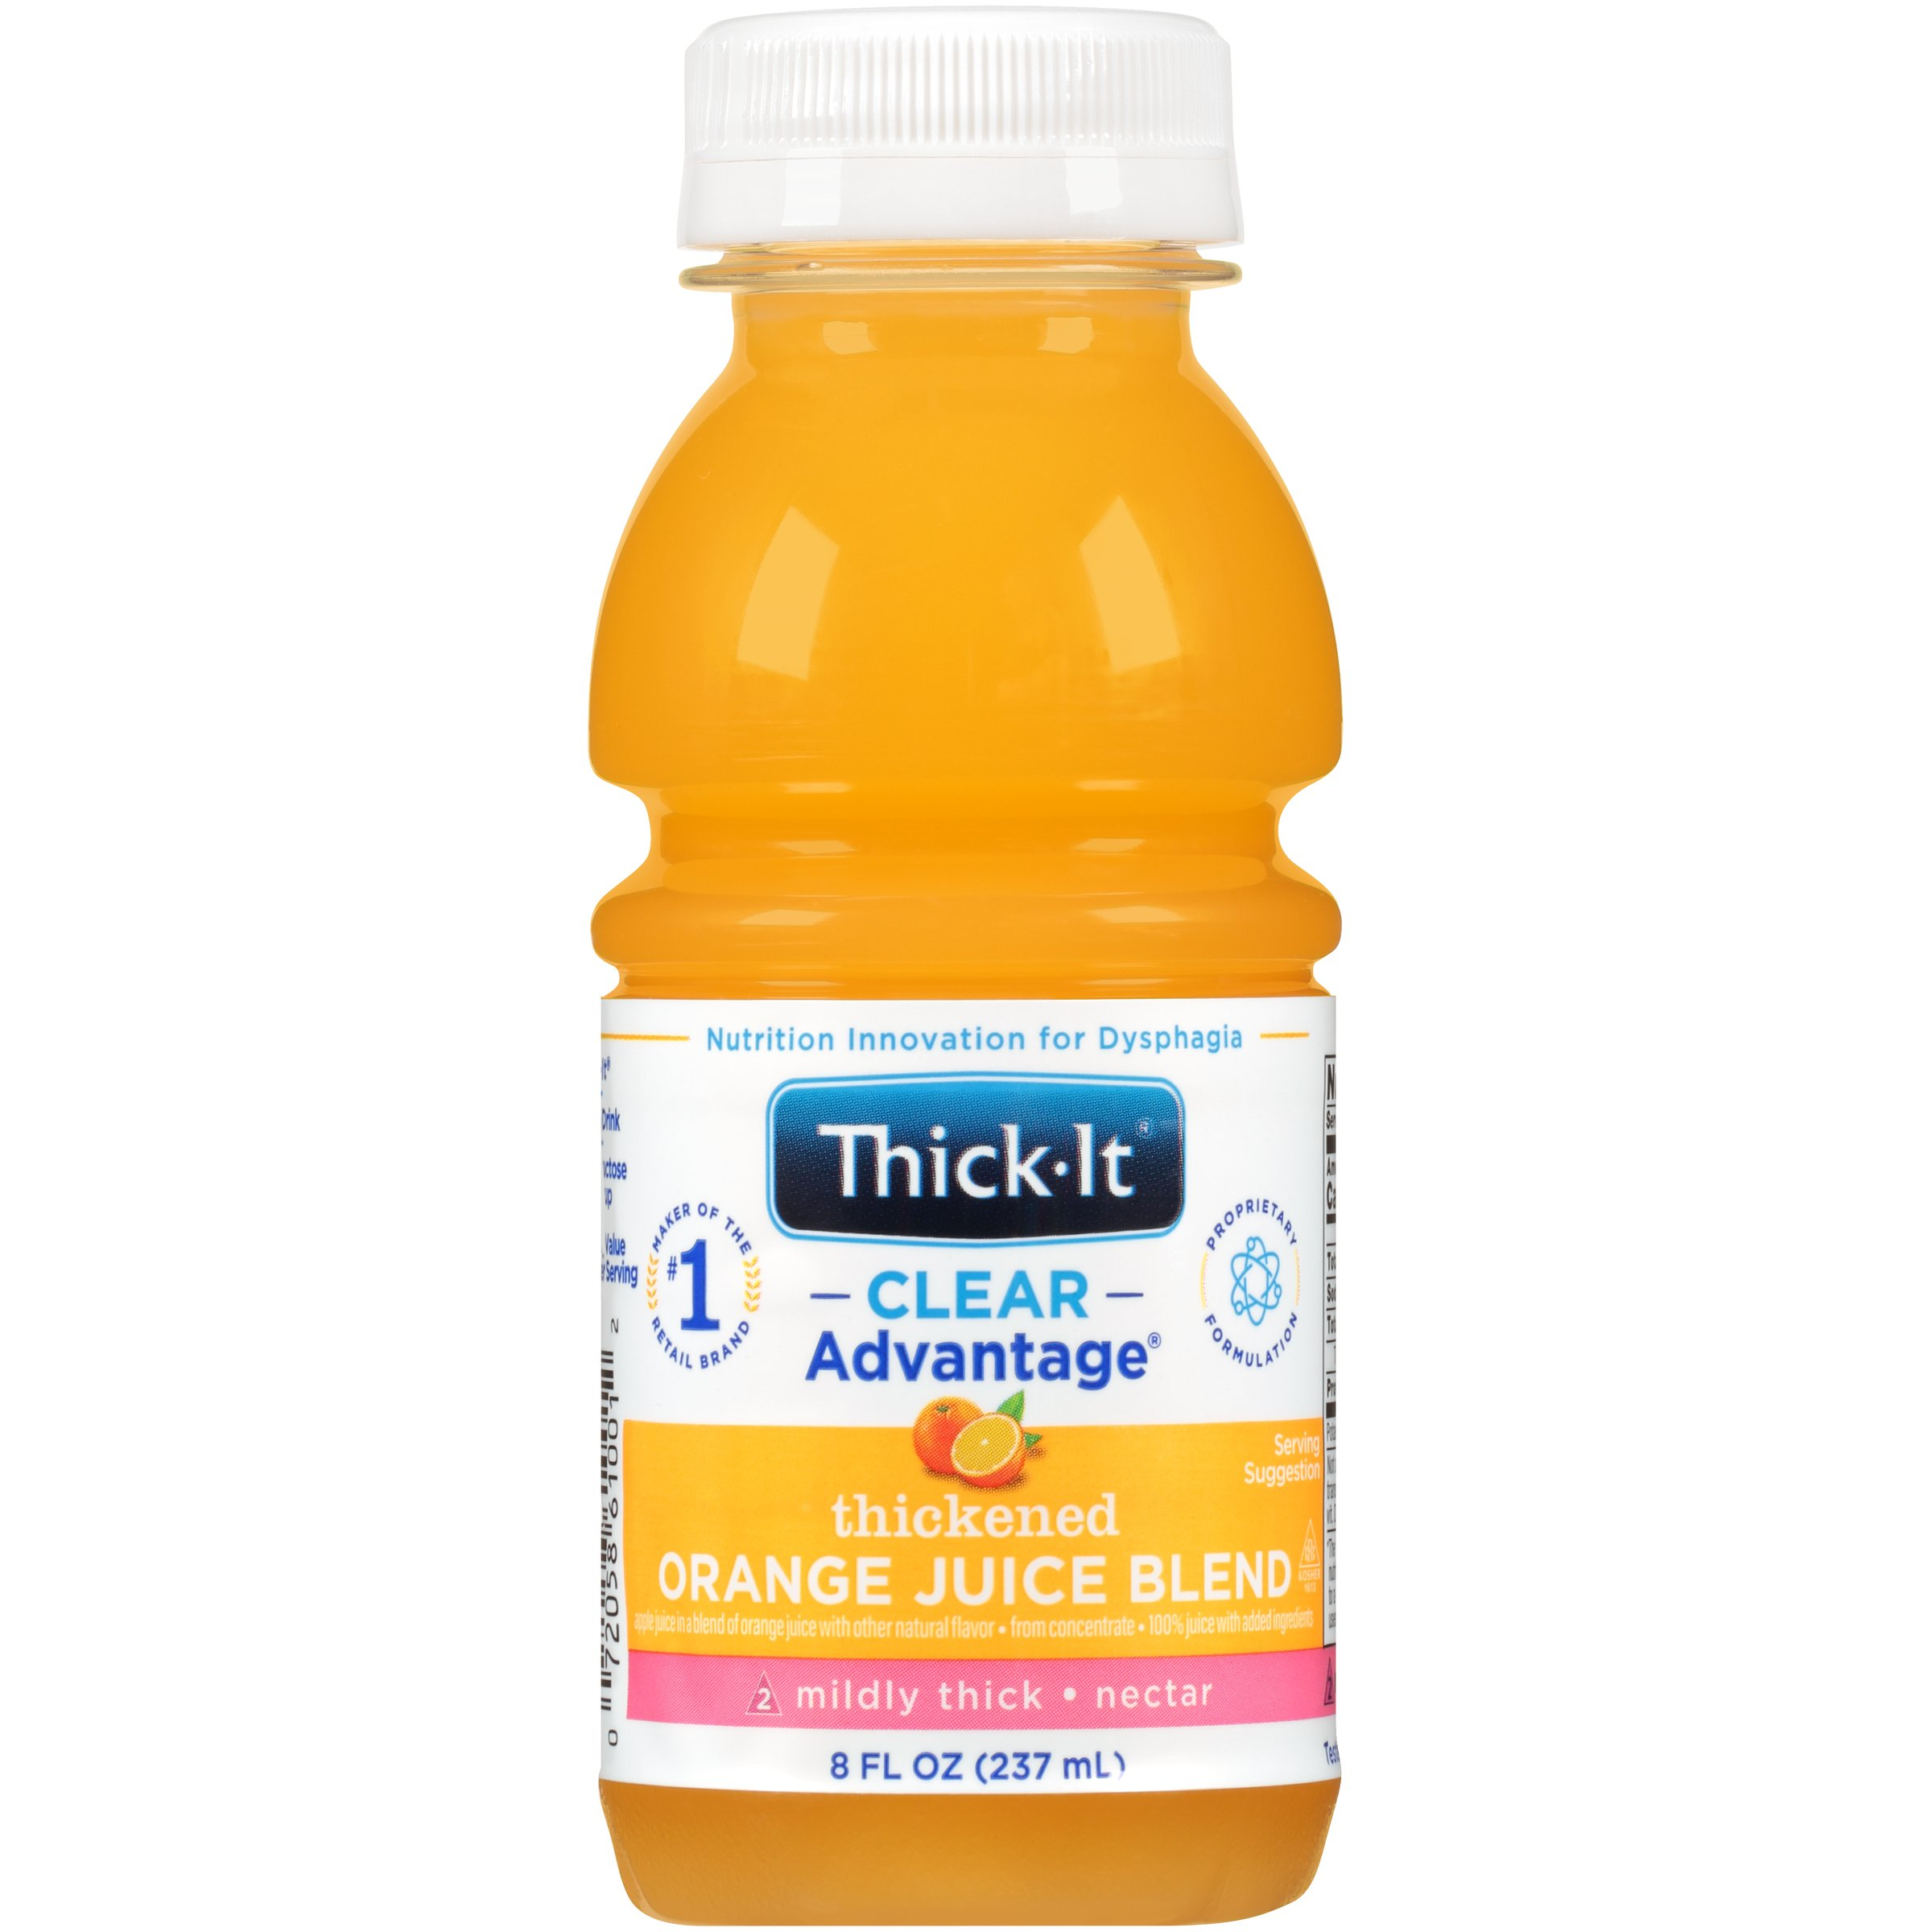 Thick-It Clear Advantage Thickened Orange Juice Blend, Mildly Thick, Nectar Consistency, B476-L9044, 8 oz. - 1 Each